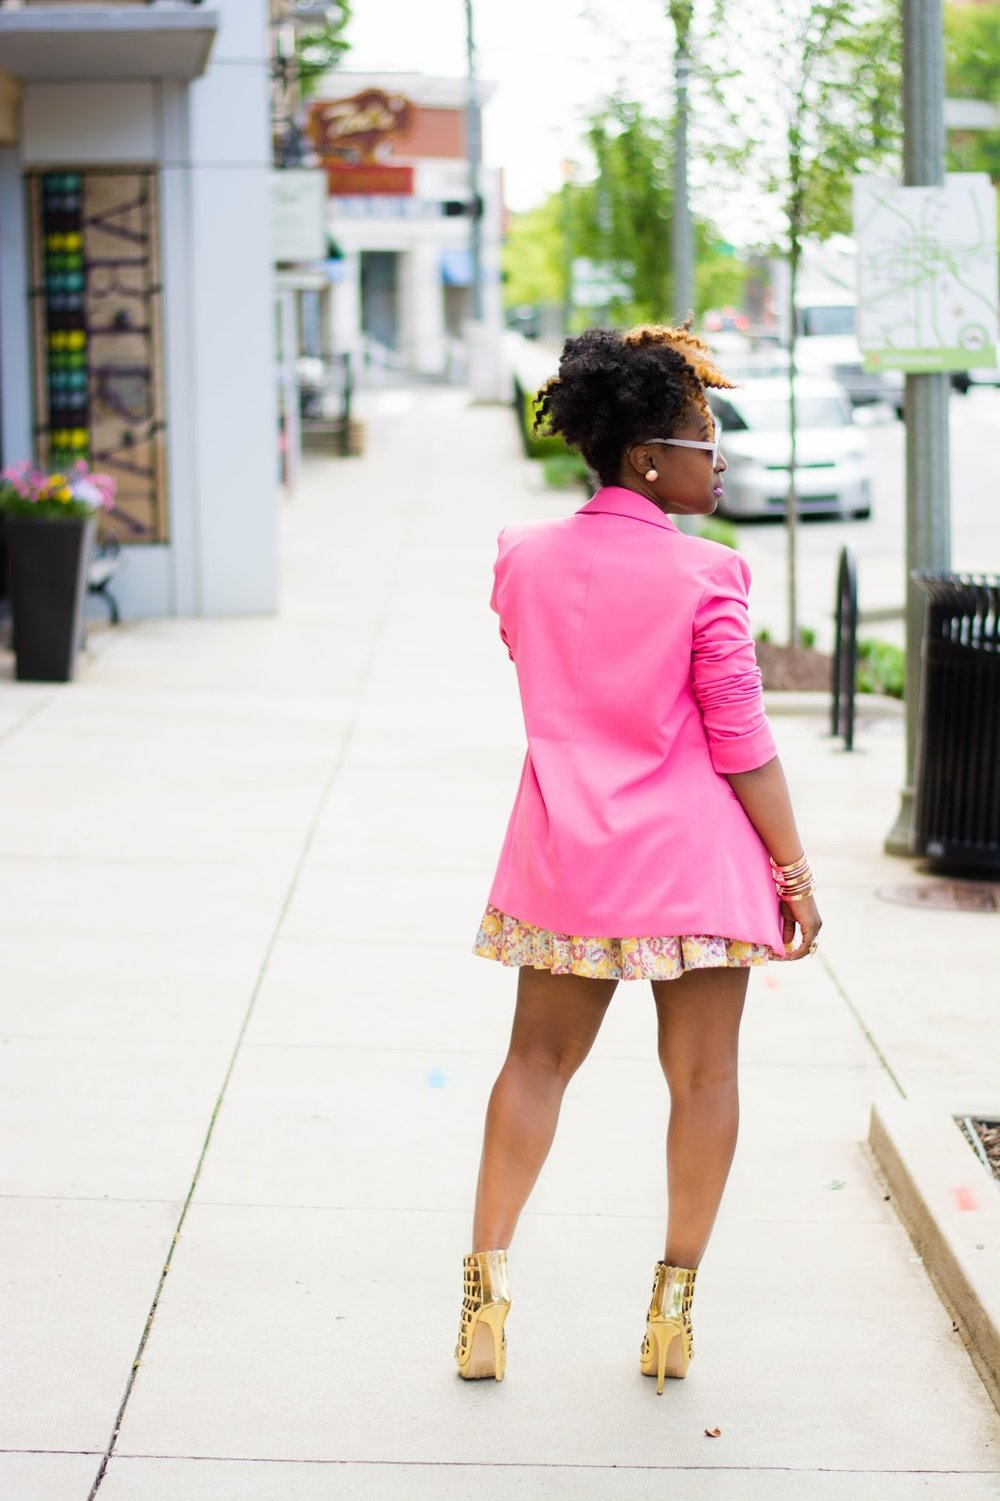 Atlanta style blogger, style blogger, Atlanta blogger, Atlanta stylist, Forever21, pink blazer, Midi skirt, Gold heels, caged heels, gold accessories, Style style, black bloggers, black girls rock, black girls killing it, Style influencer, Atlanta stylist, natural hair fashion, Atlanta street fashion